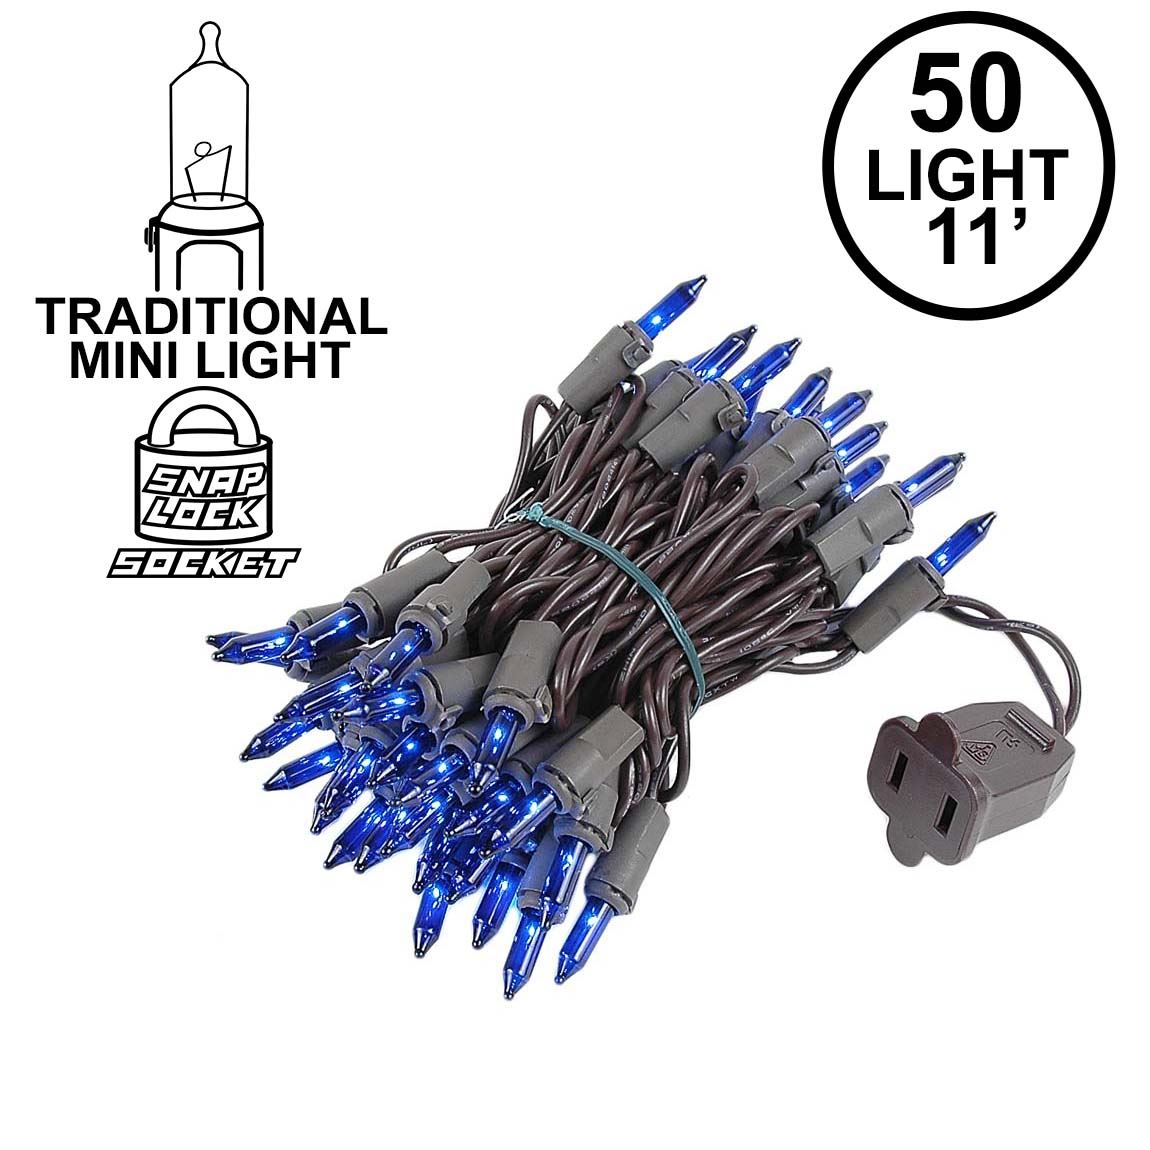 Picture of Blue Christmas Mini Lights 50 Light on Brown Wire 11 Feet Long